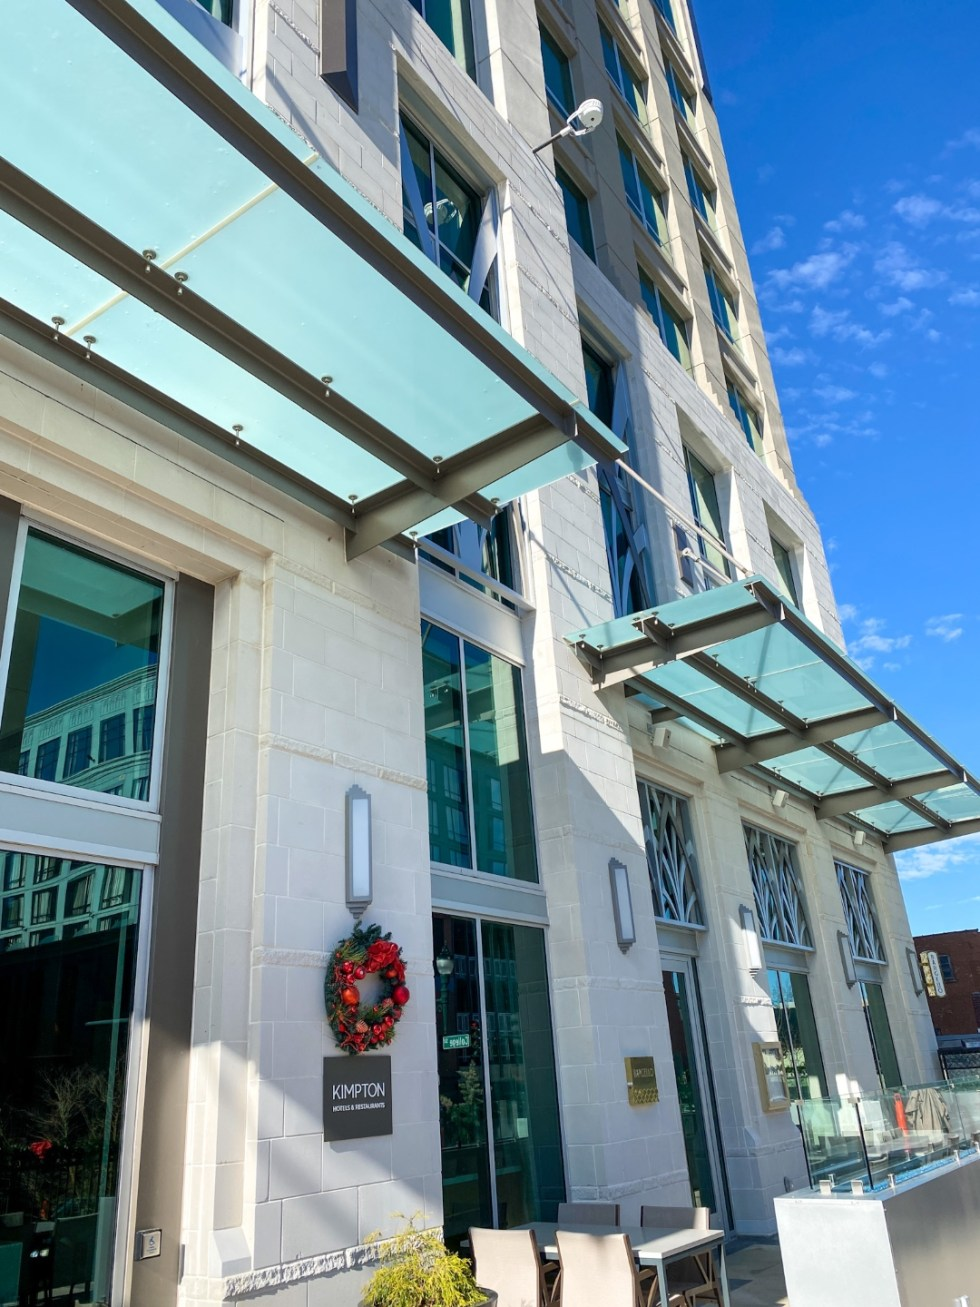 Christmas in Asheville: a Weekend Getaway During the Holidays - I'm Fixin' To - @imfixintoblog | Christmas in Asheville NC by popular NC lifestyle blog, I'm Fixin' To: image of the Kimpton hotel.